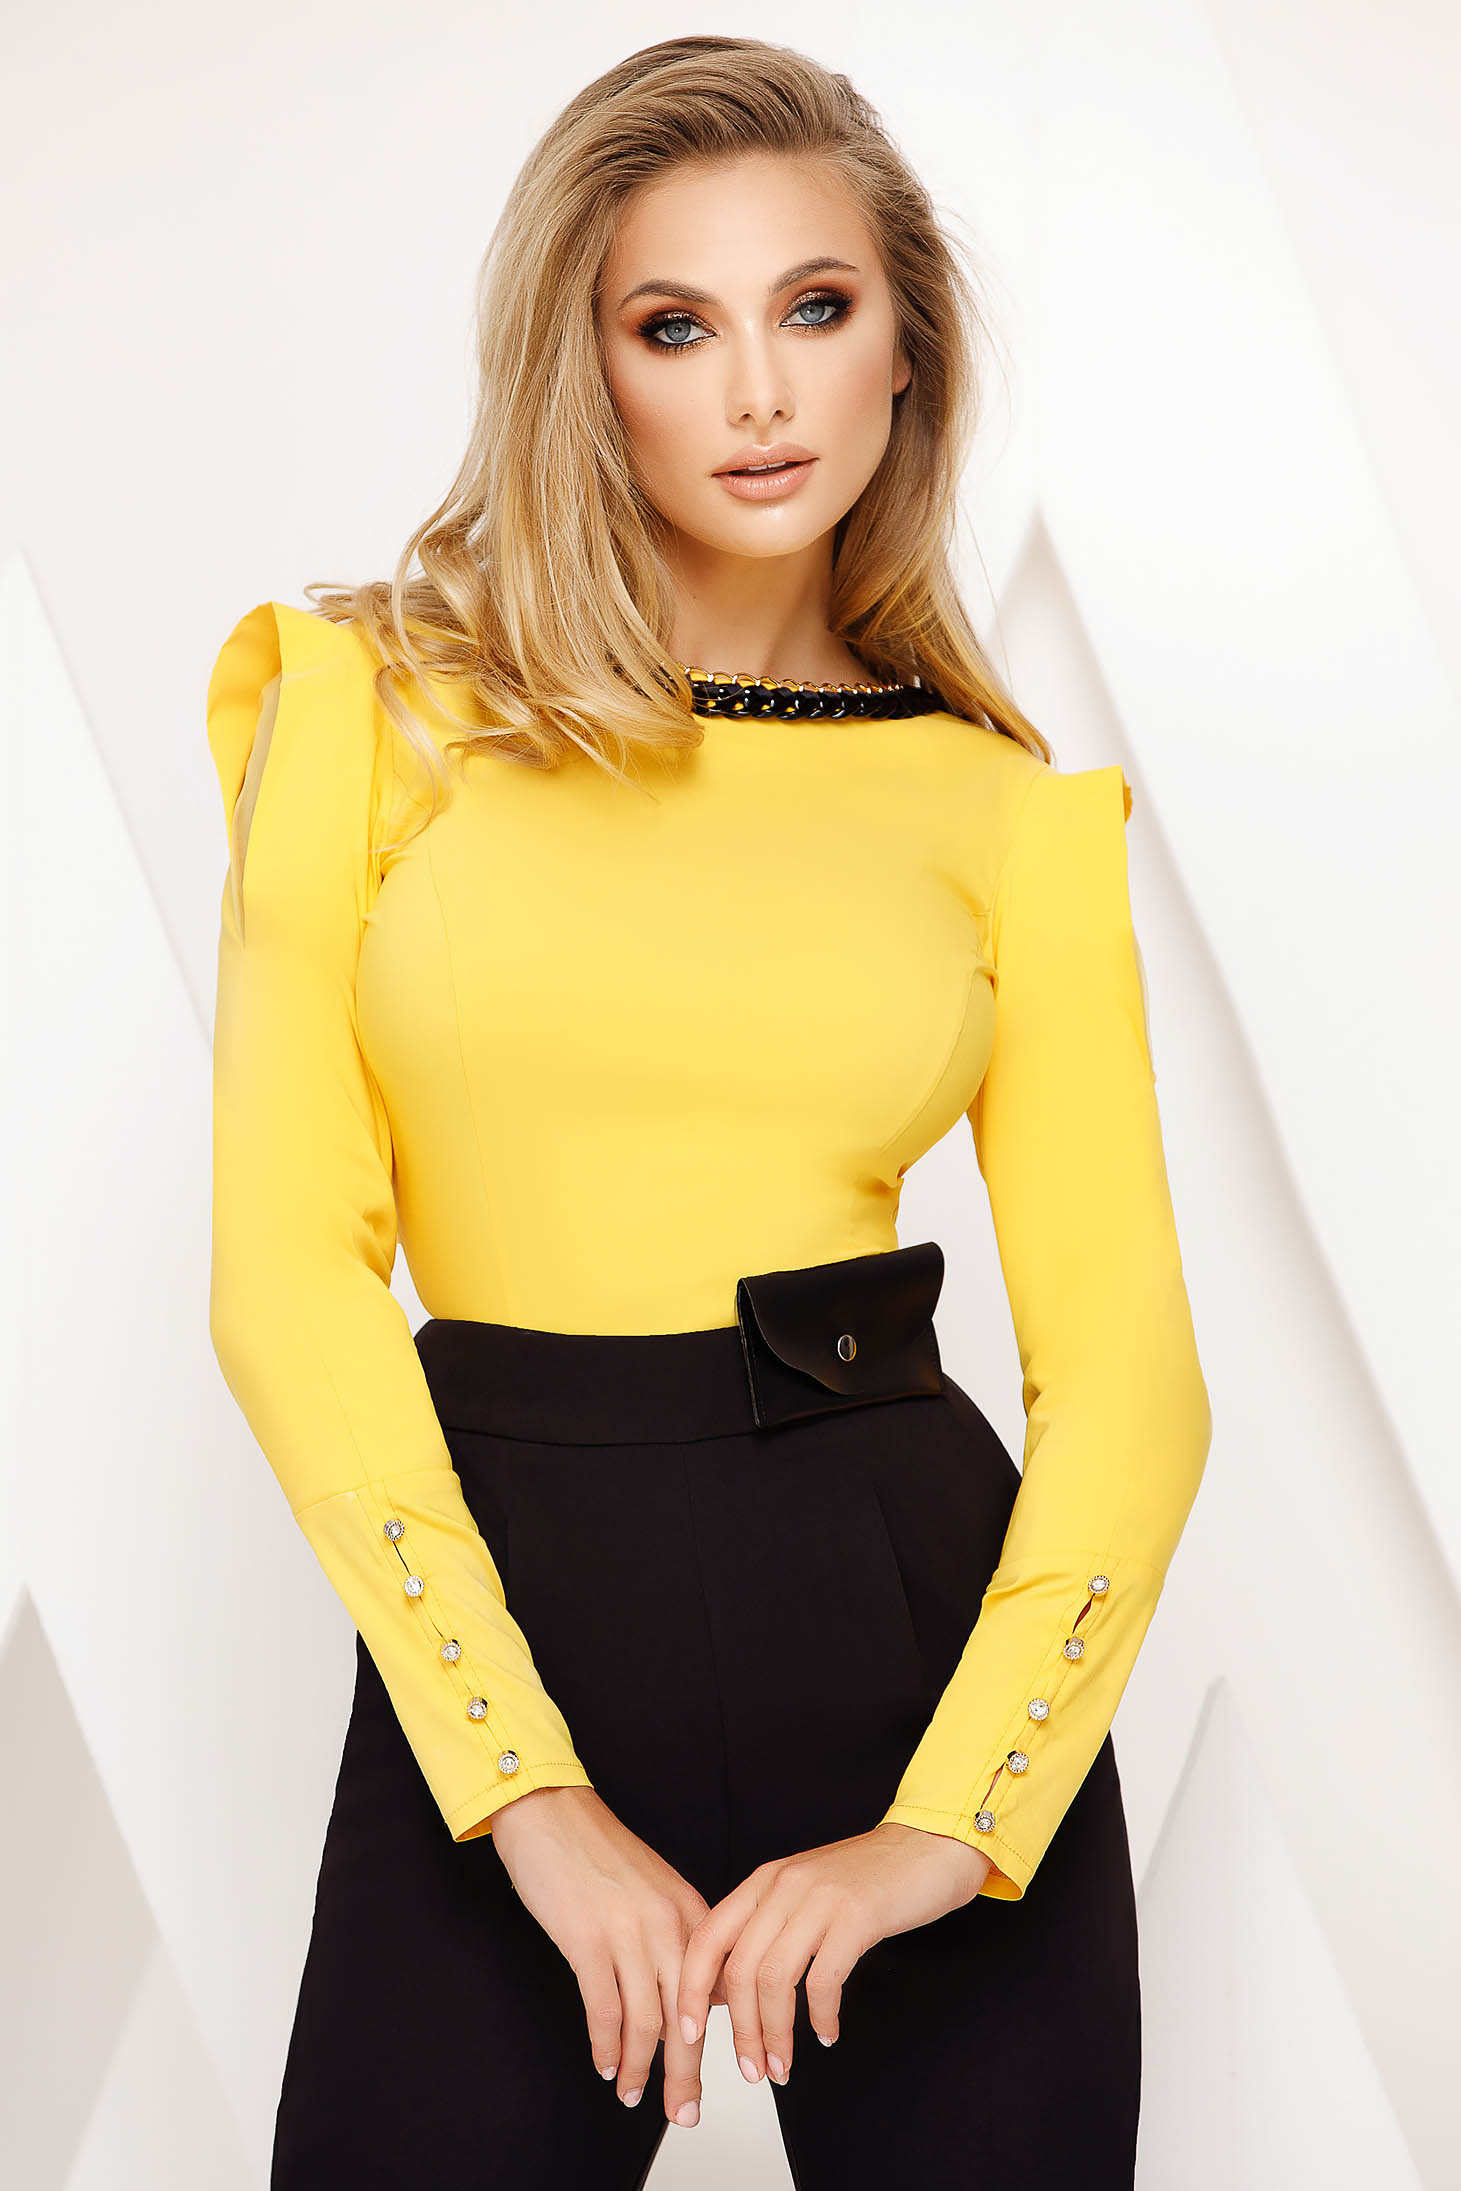 Women`s shirt yellow office with tented cut slightly elastic cotton accessorized with chain